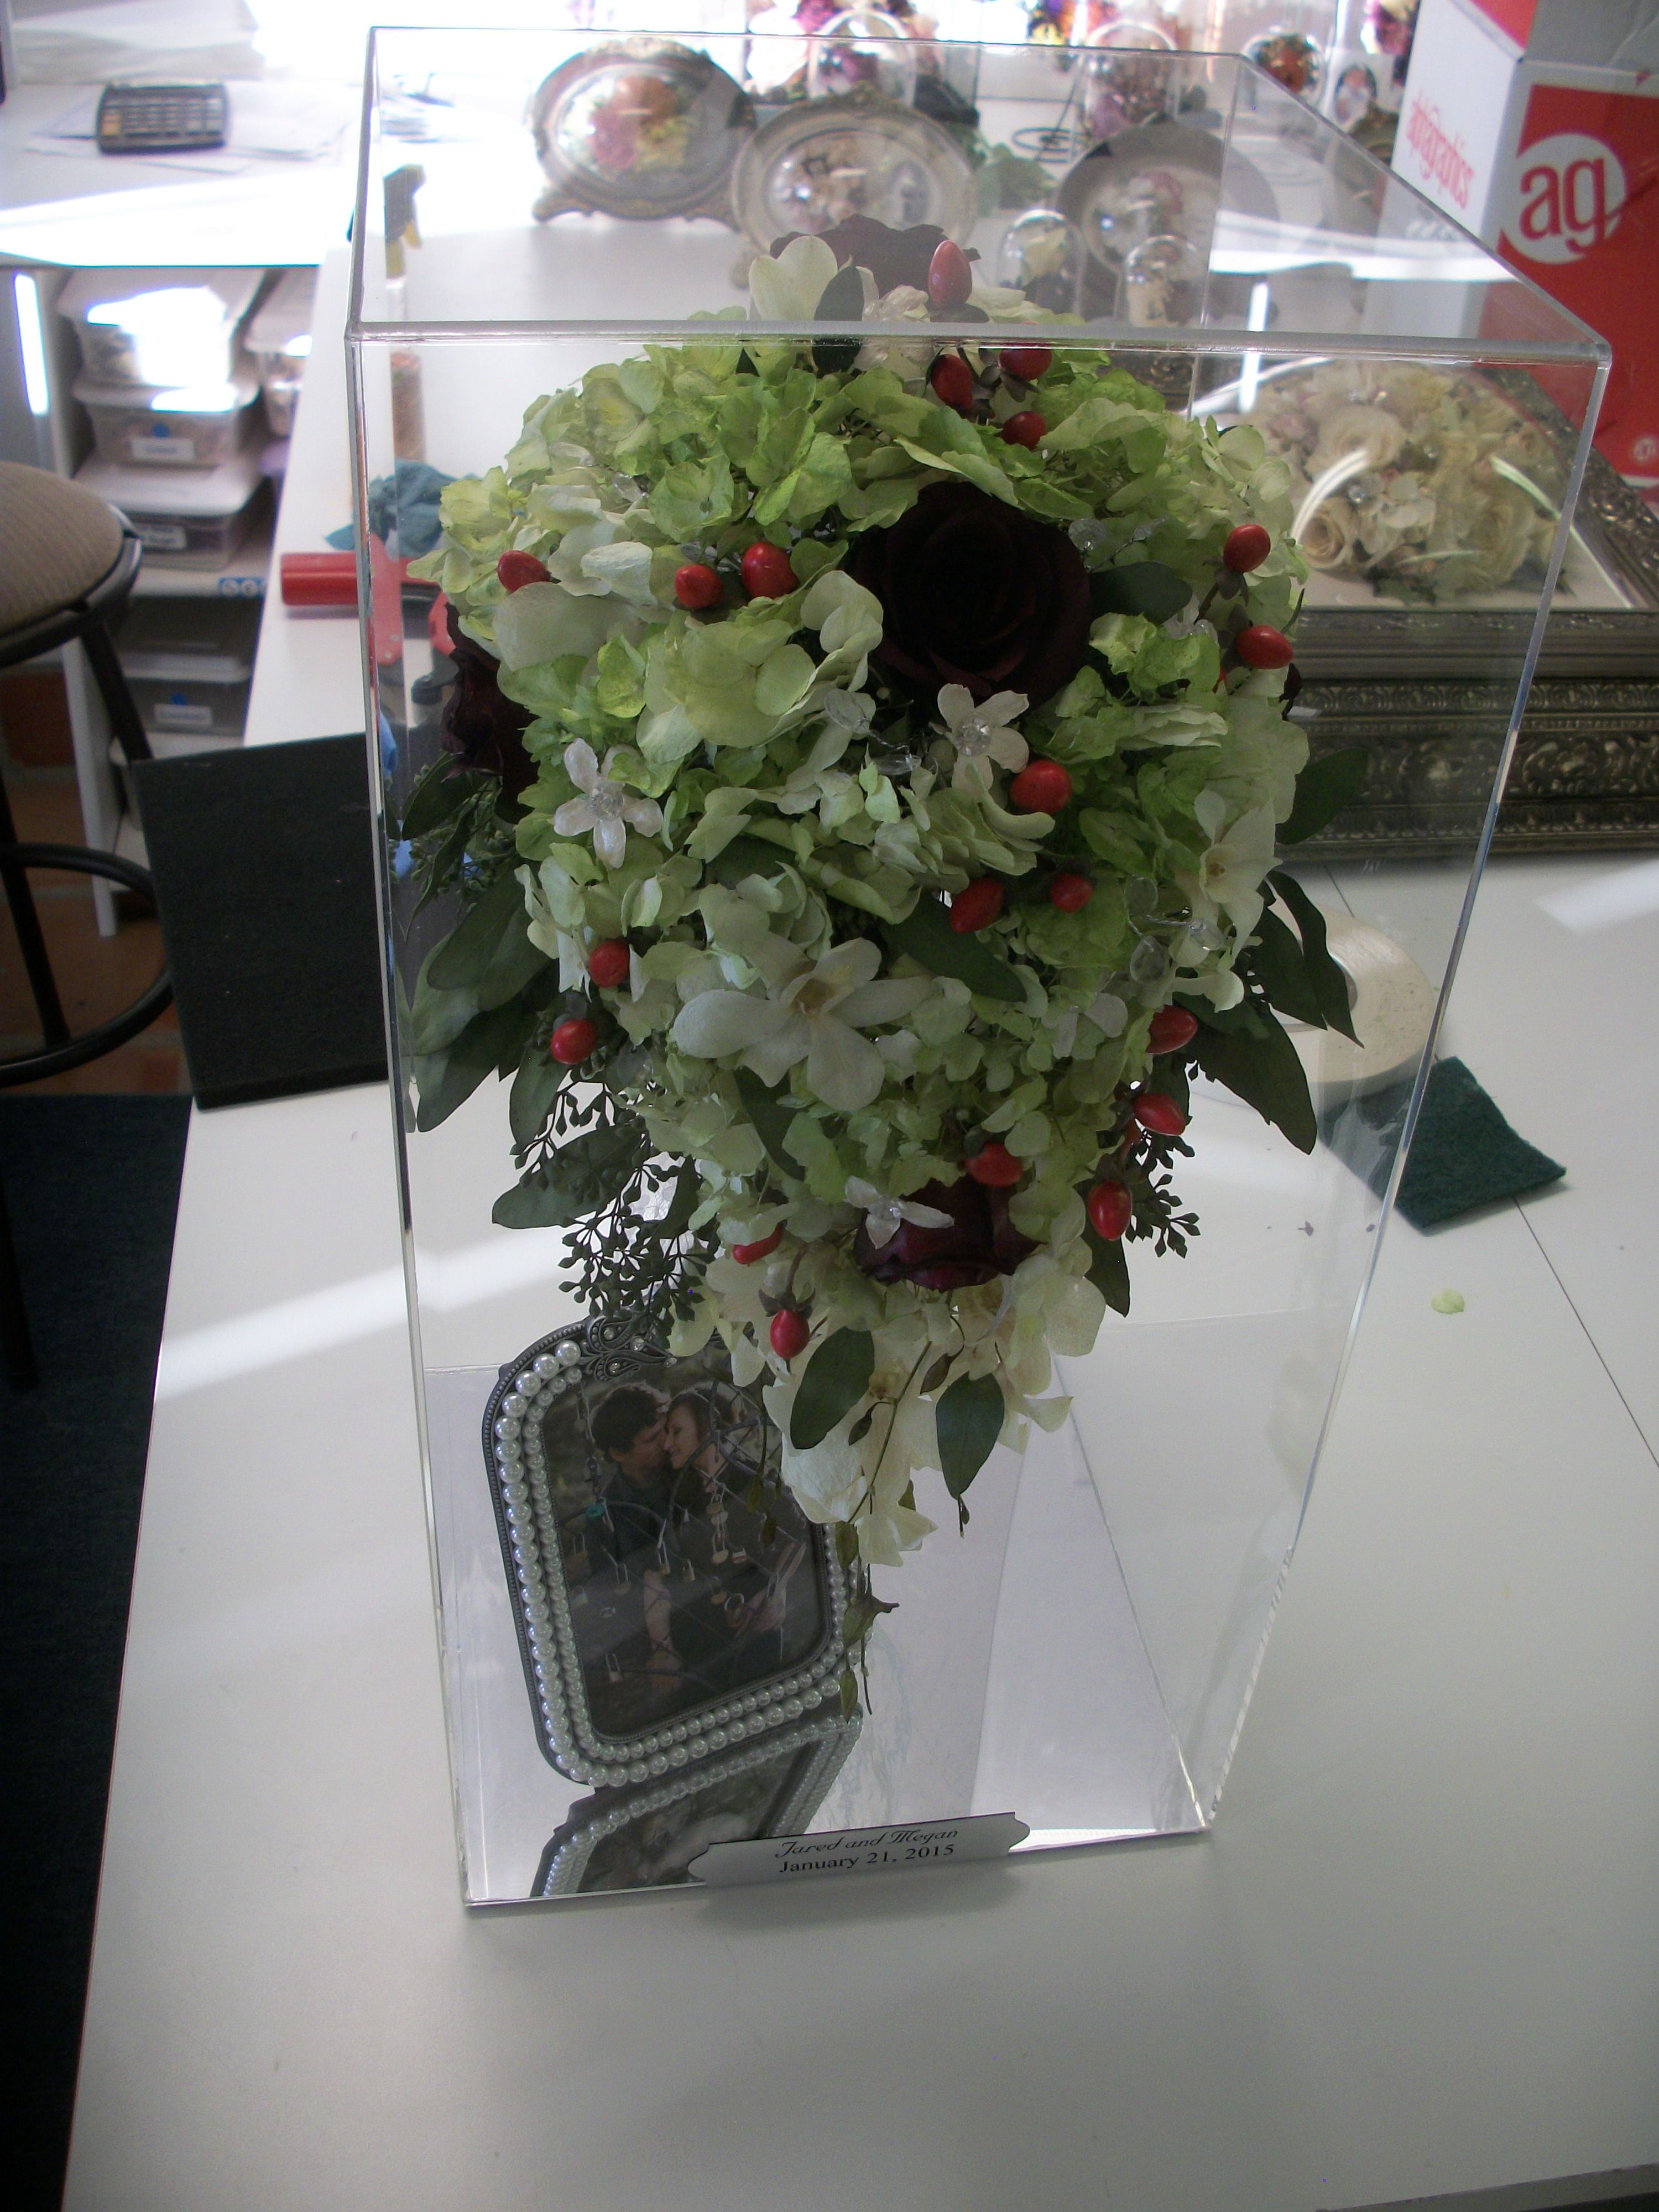 Do you wish that you had preserved your wedding bouquet